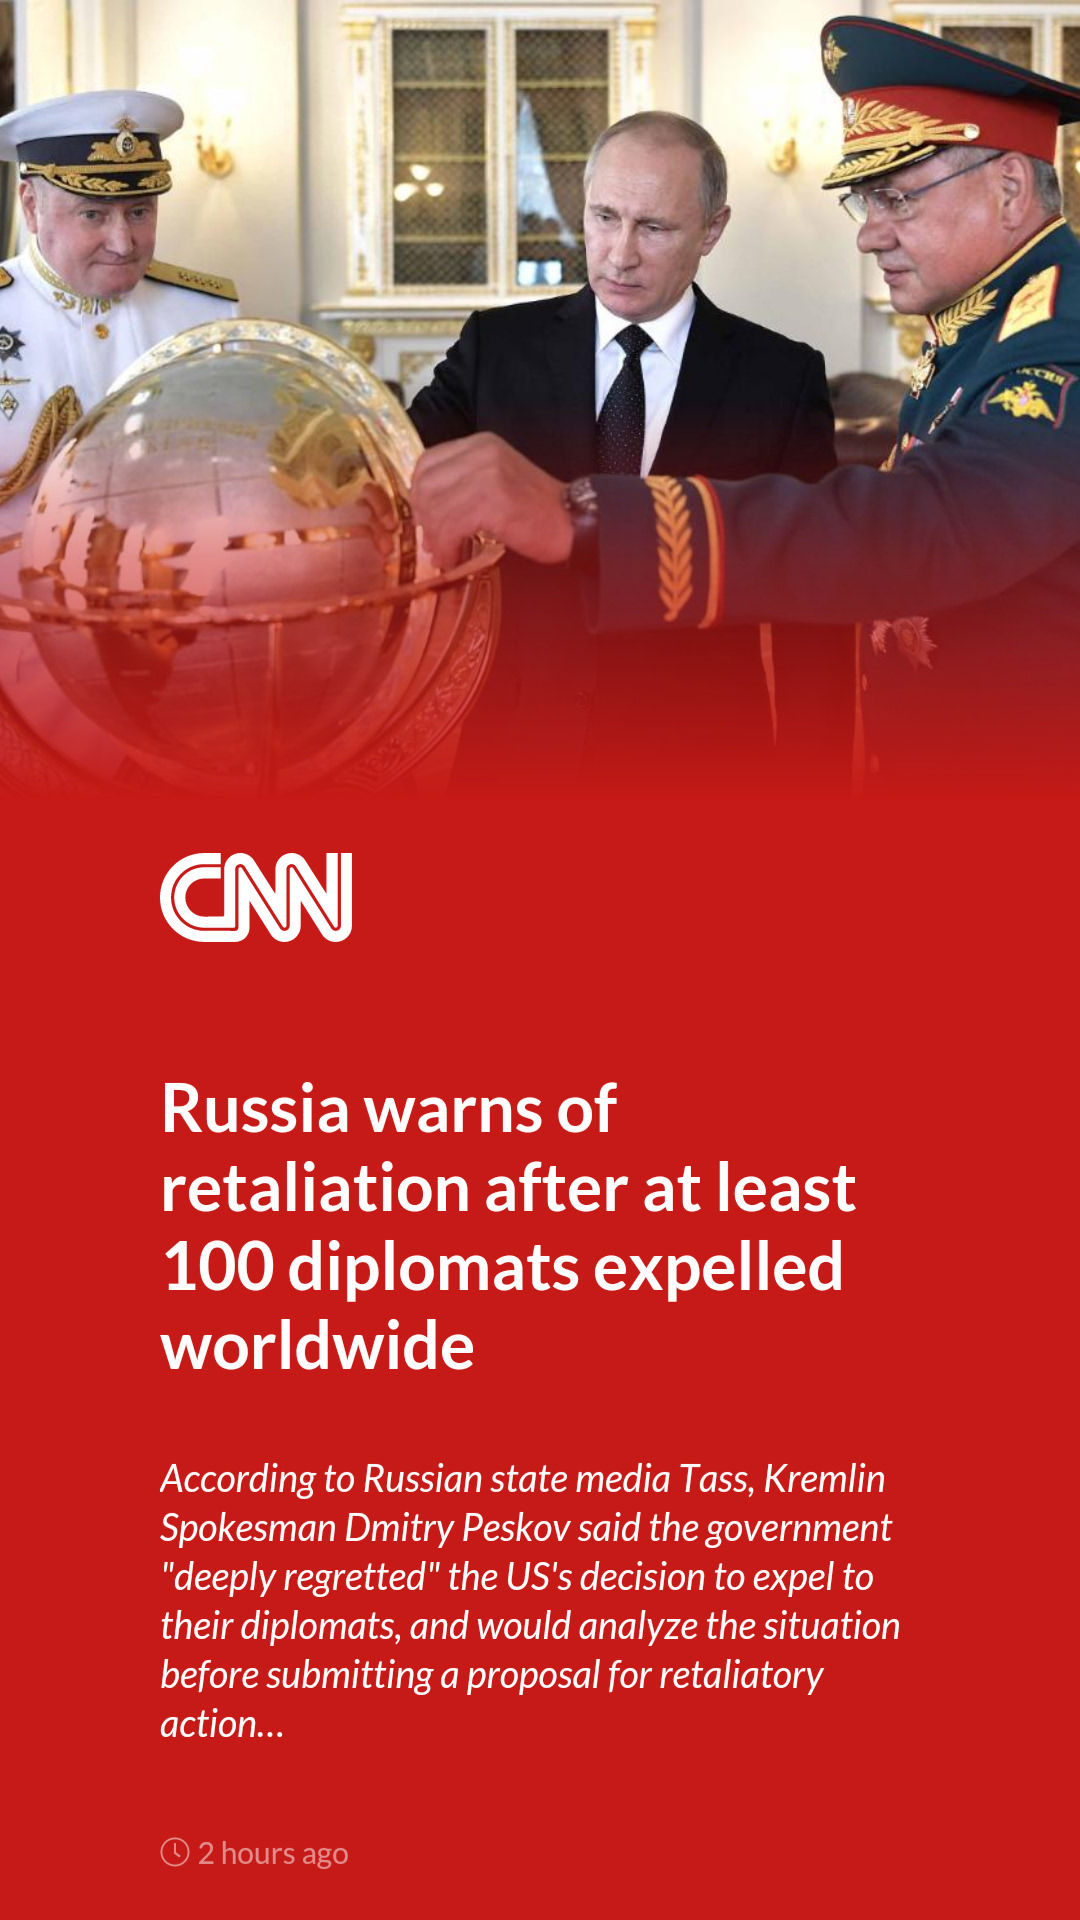 CNN News screenshot 3